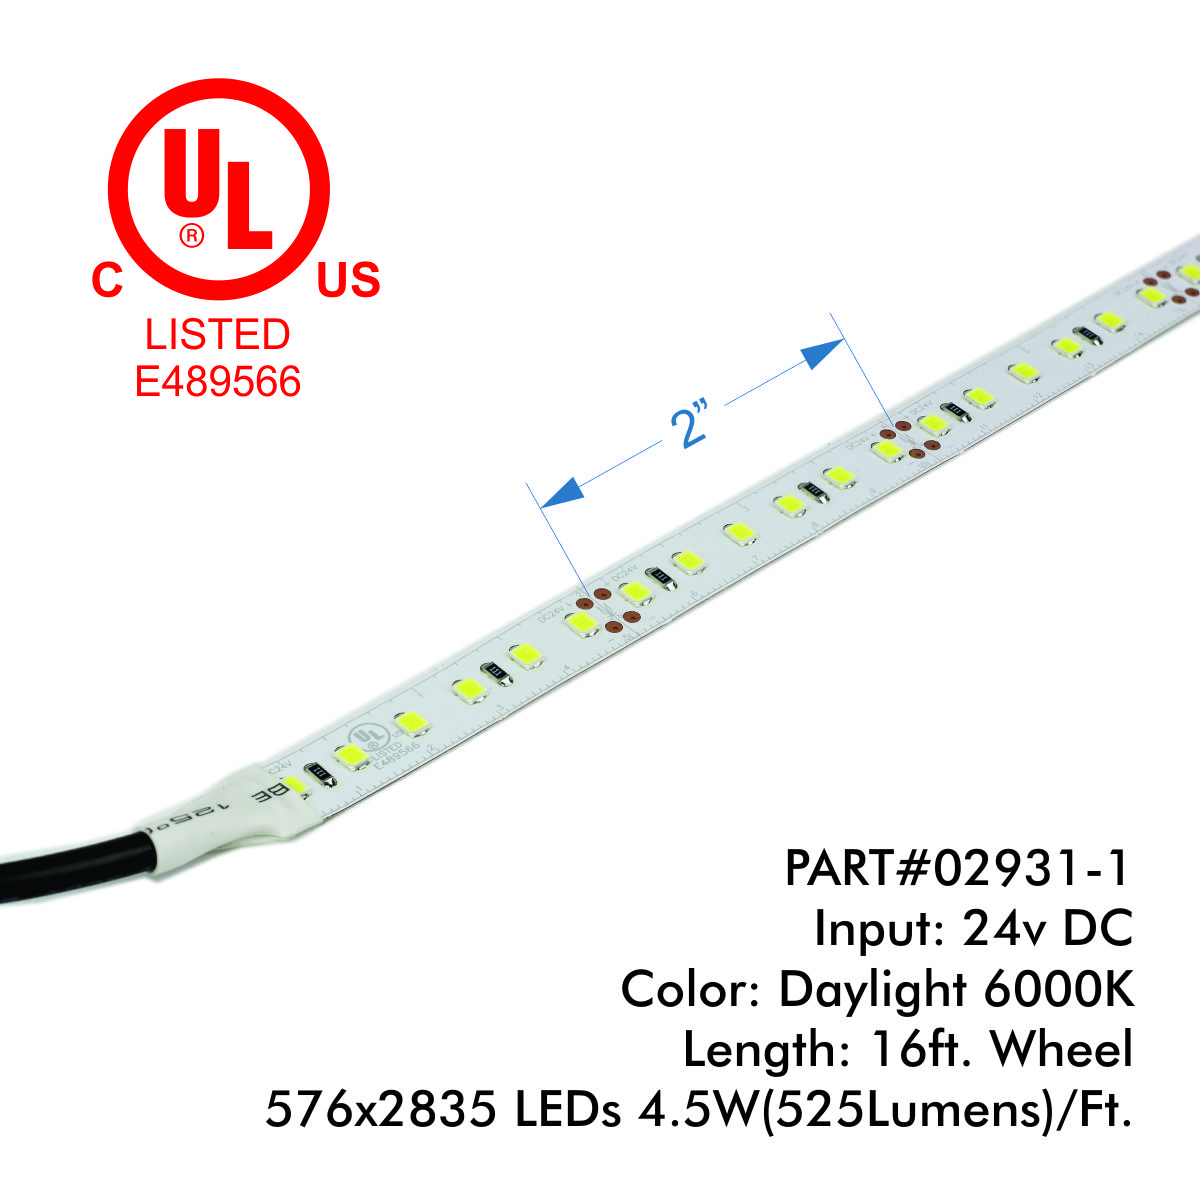 Eco+ Series - 2835 36LEDs/Ft.